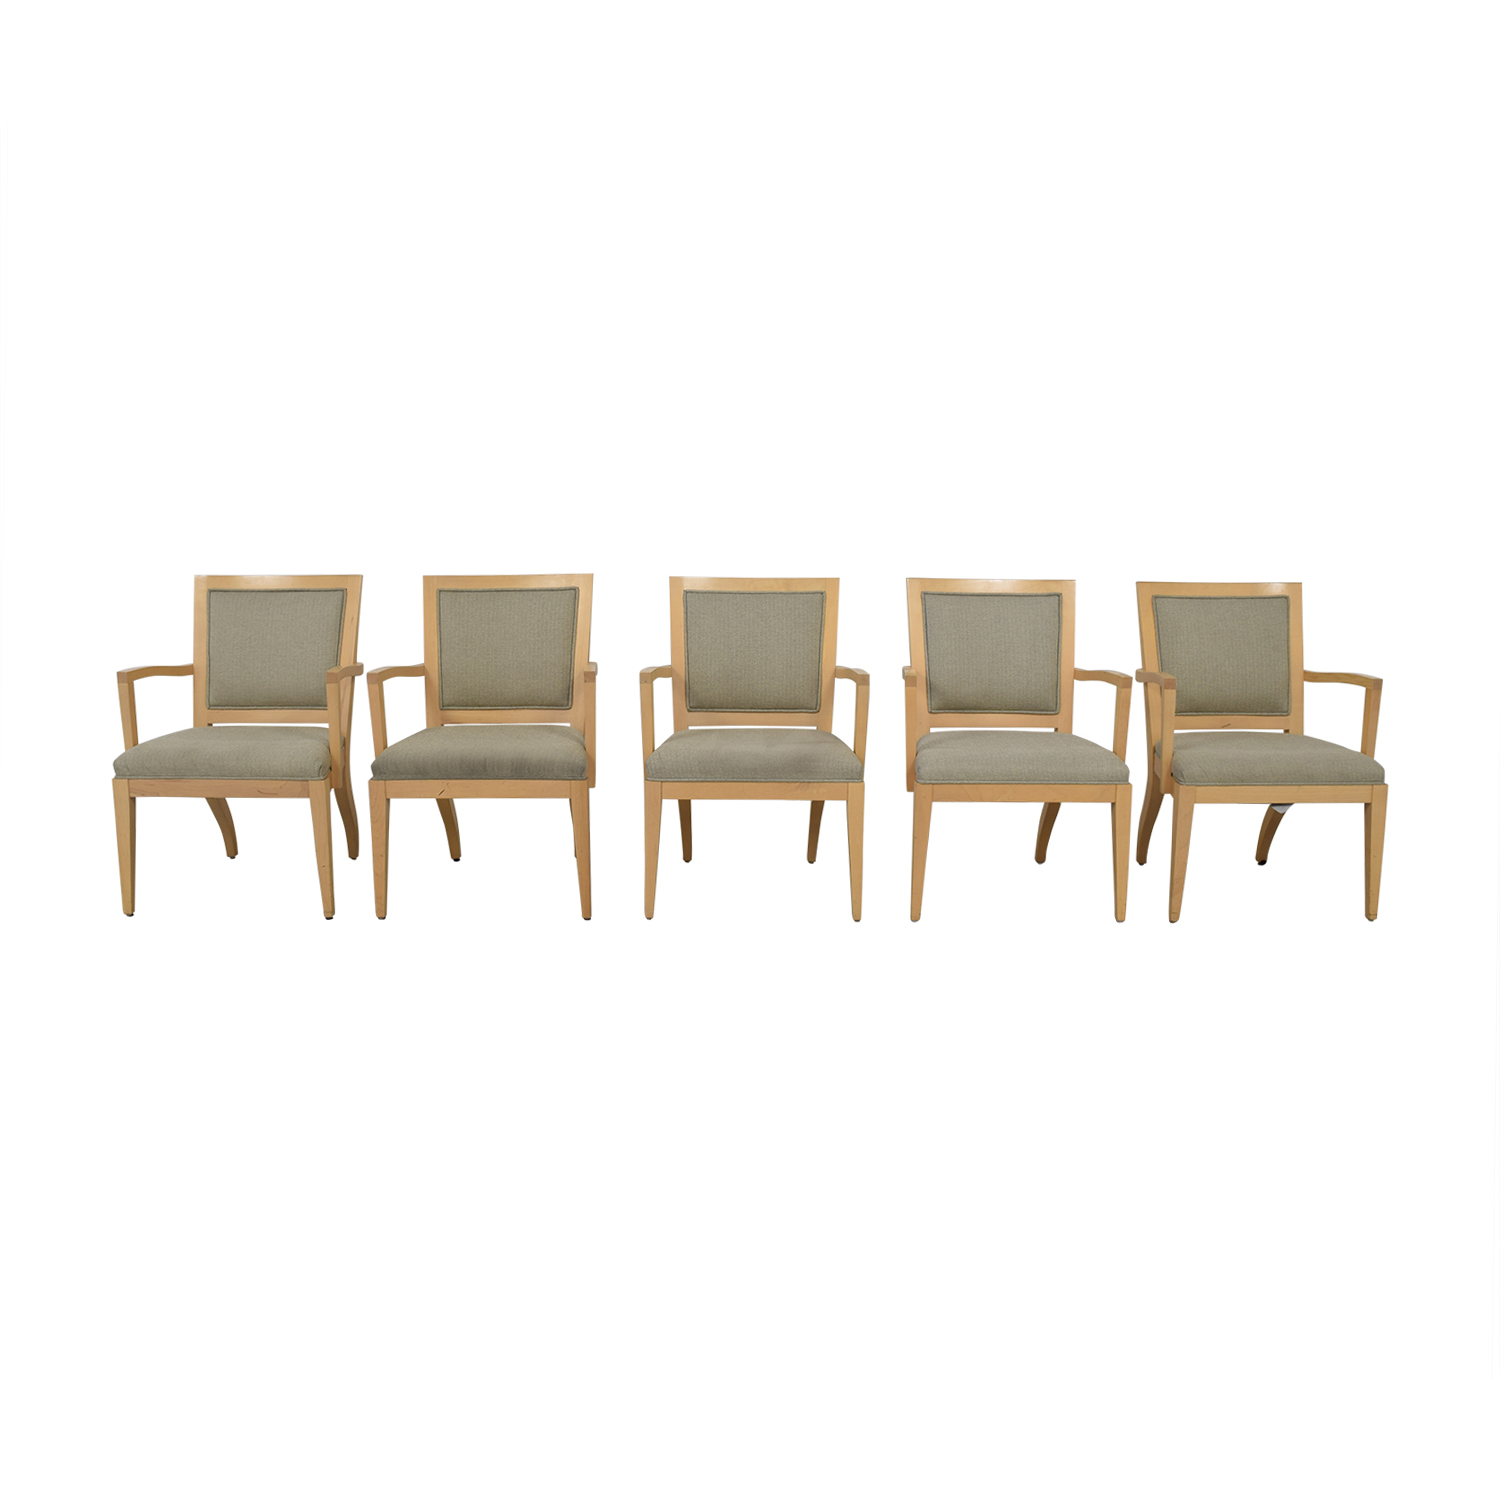 90 Off Hbf Hbf Newport Grey Arm Chairs Chairs